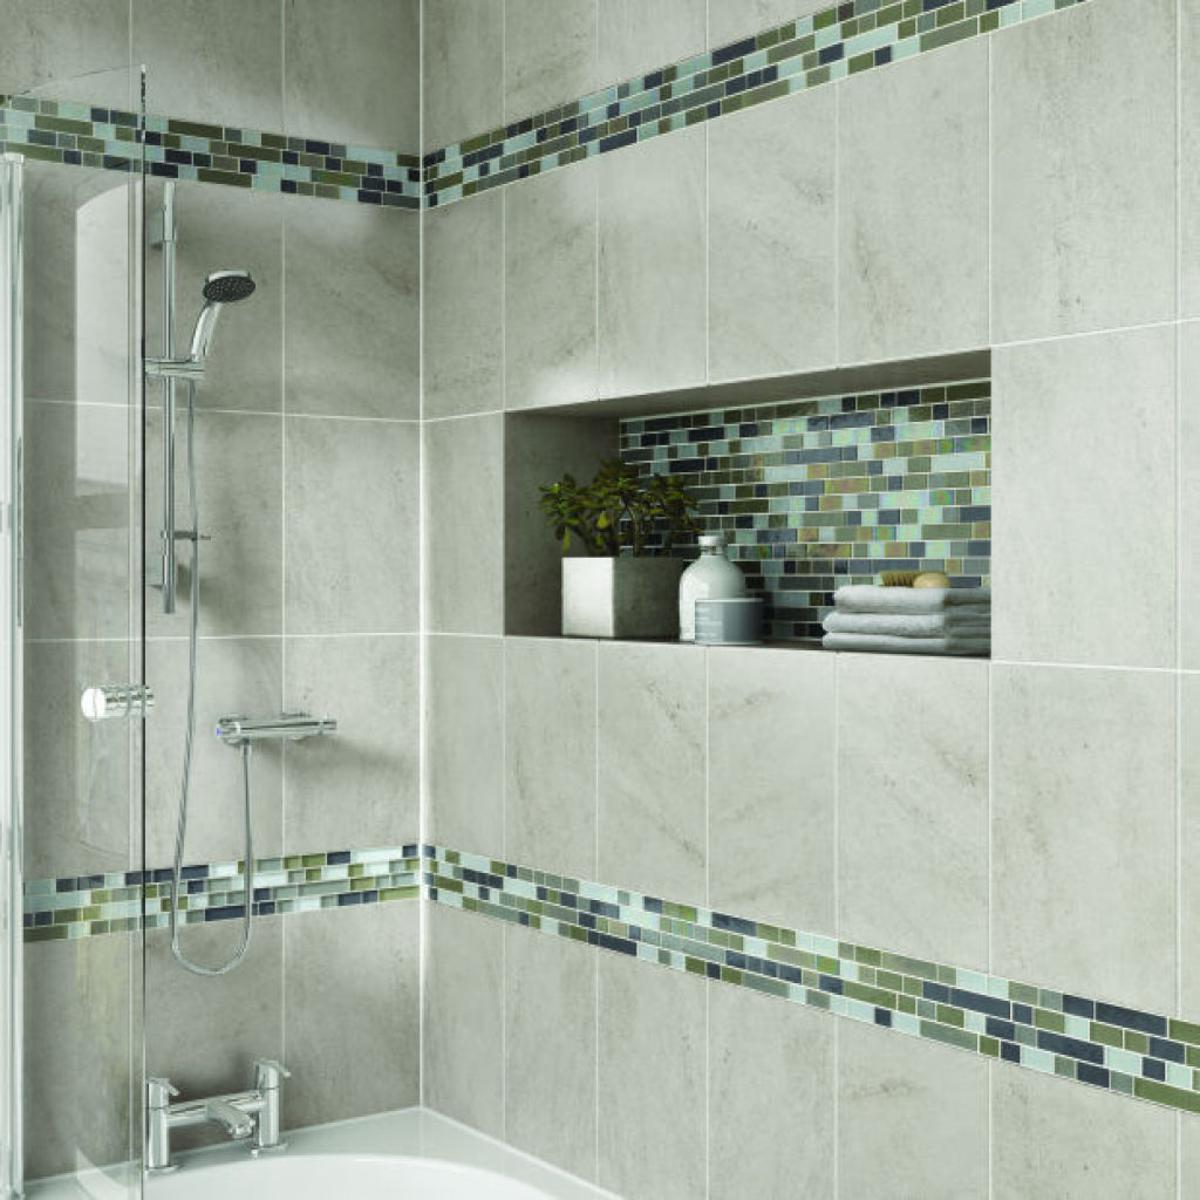 My Travertine Tile Shower Seems To Be